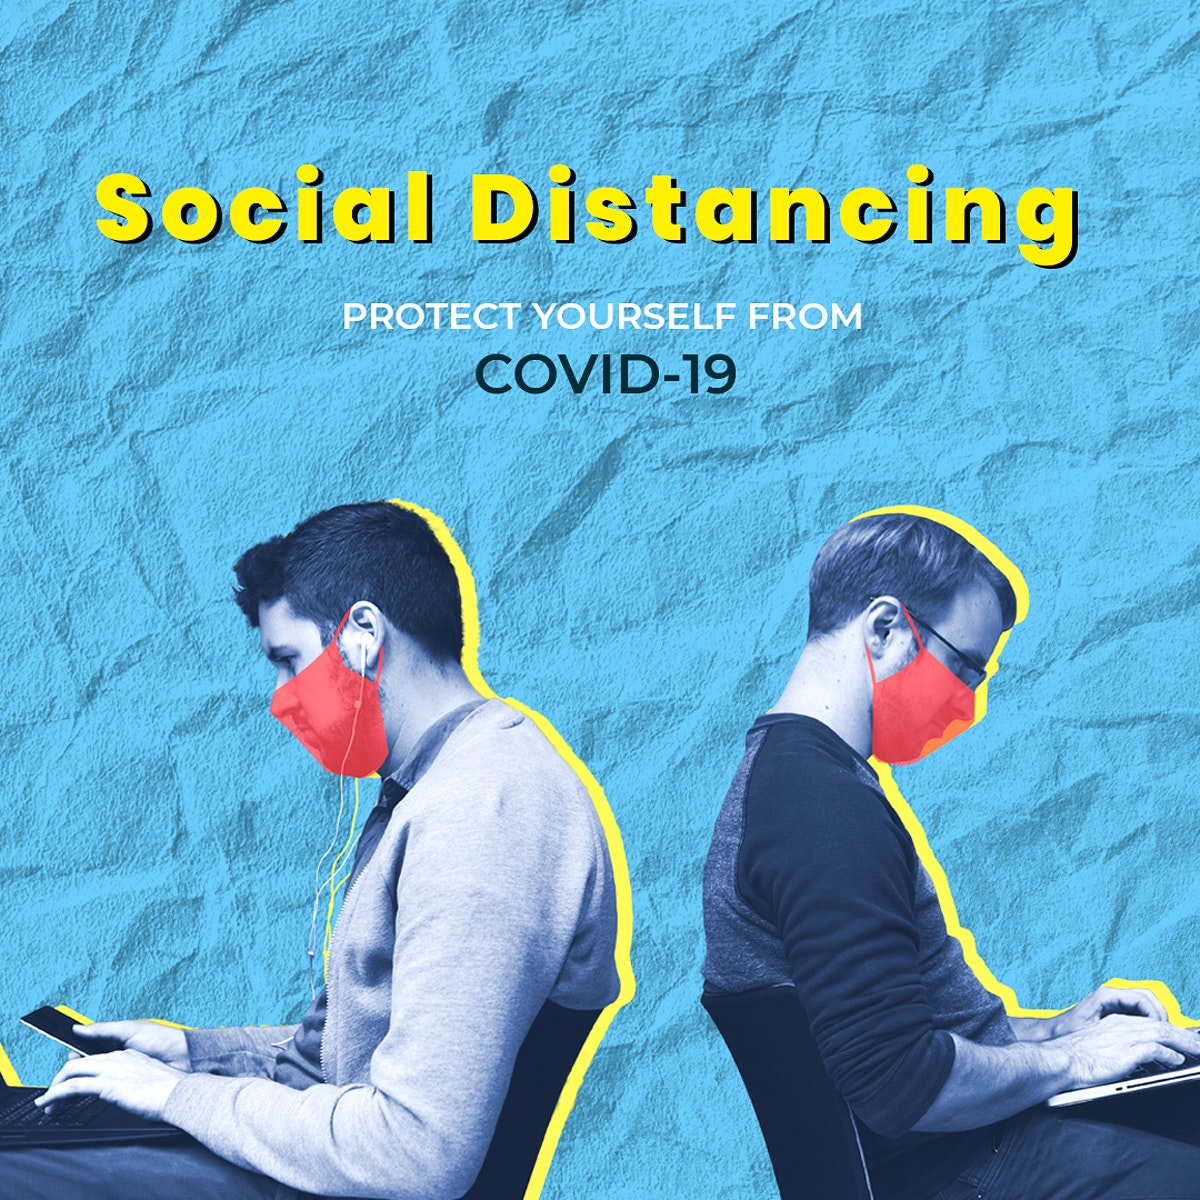 Social distancing to protect yourself and others from COVID-19